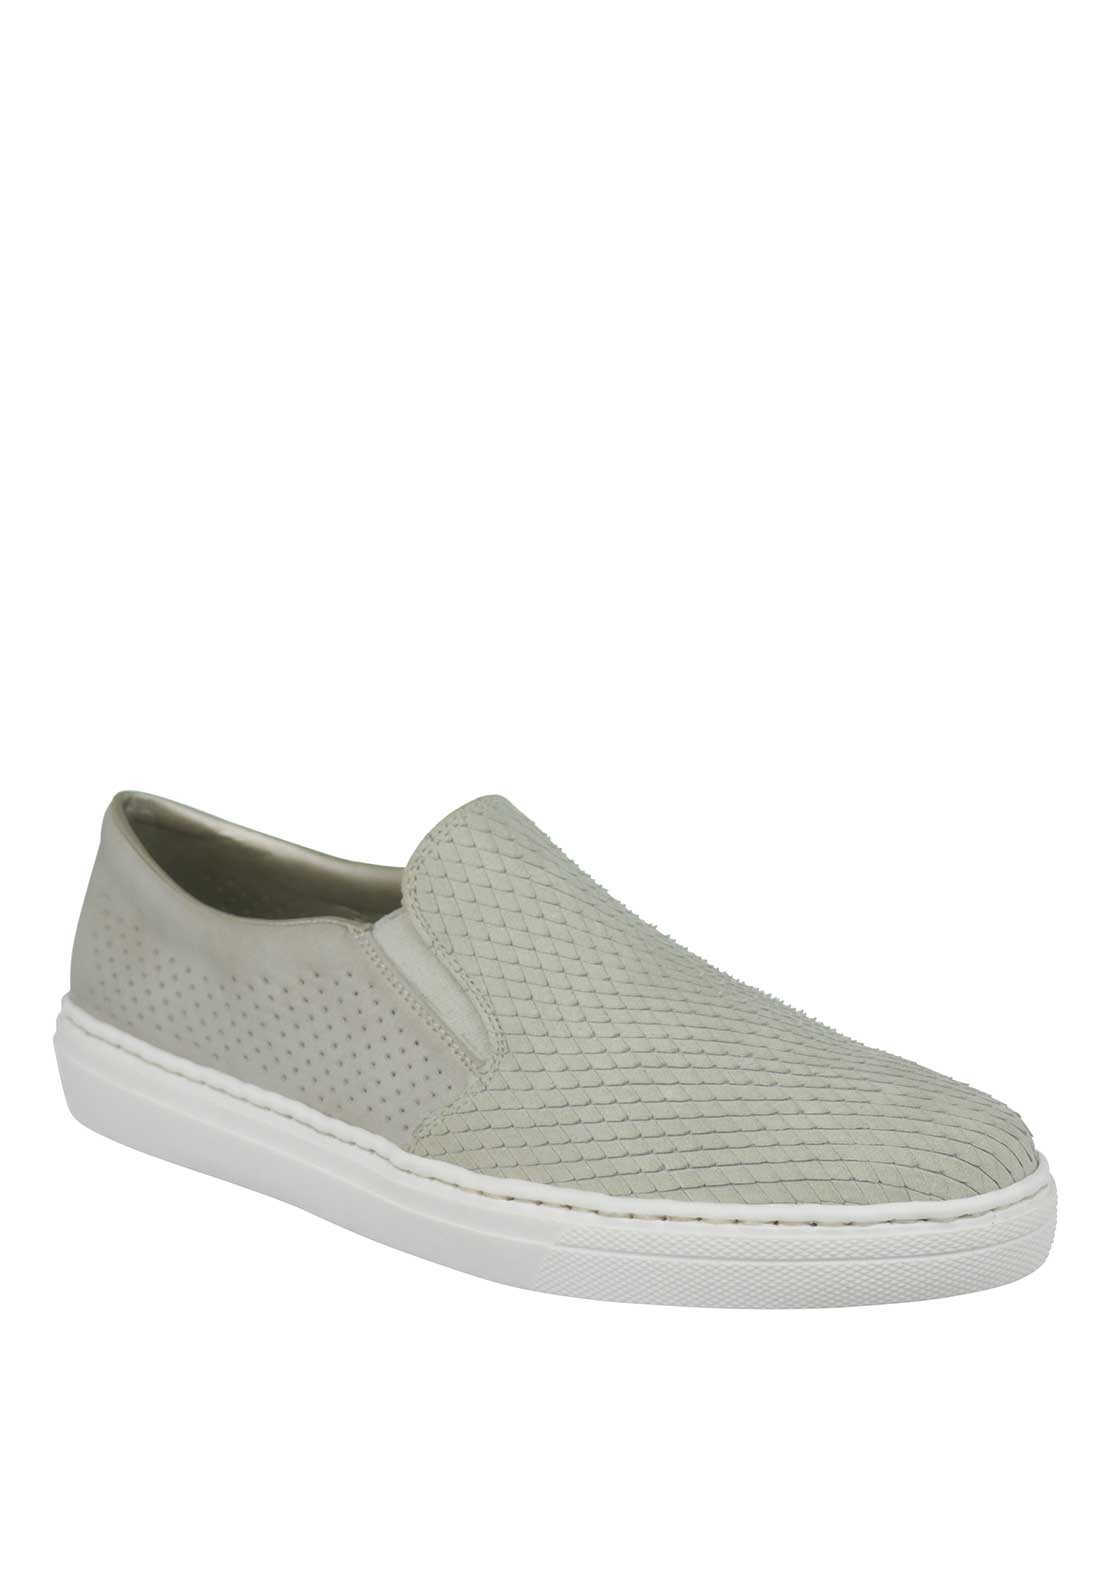 Rieker Women Leather textured Slip on Trainers, Grey